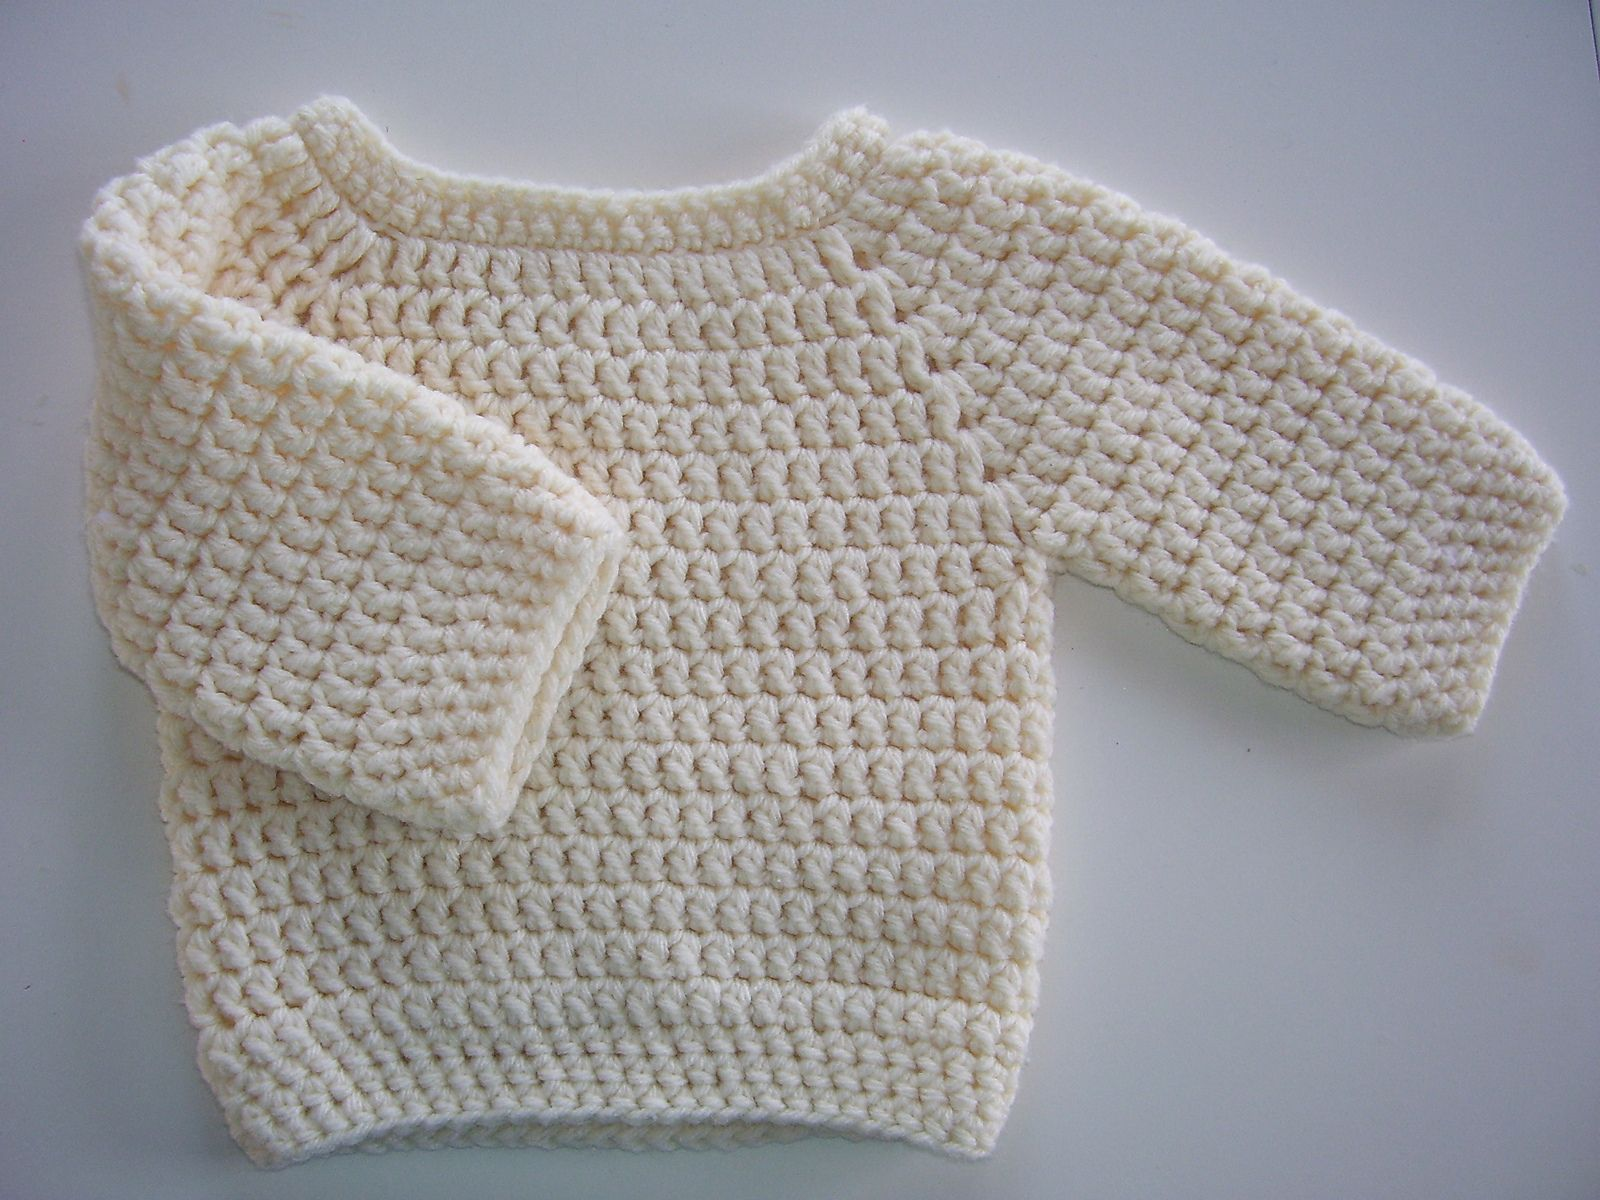 Baby Bumpy Sweater By Debbie Smith - Free Crochet Pattern - (ravelry ...